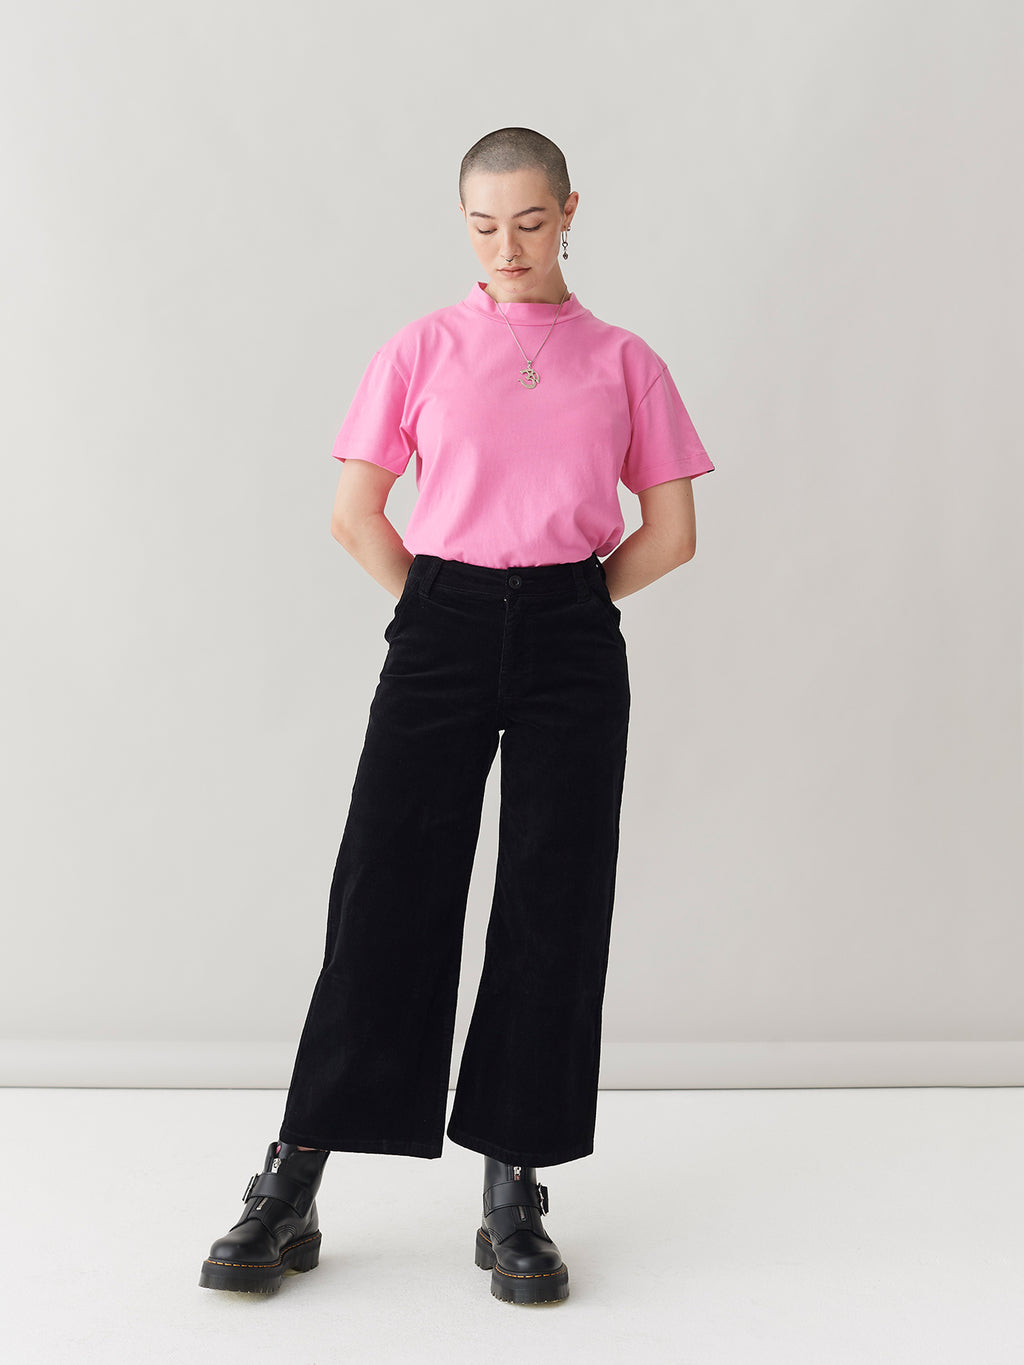 LO Work Pants - Black Cord